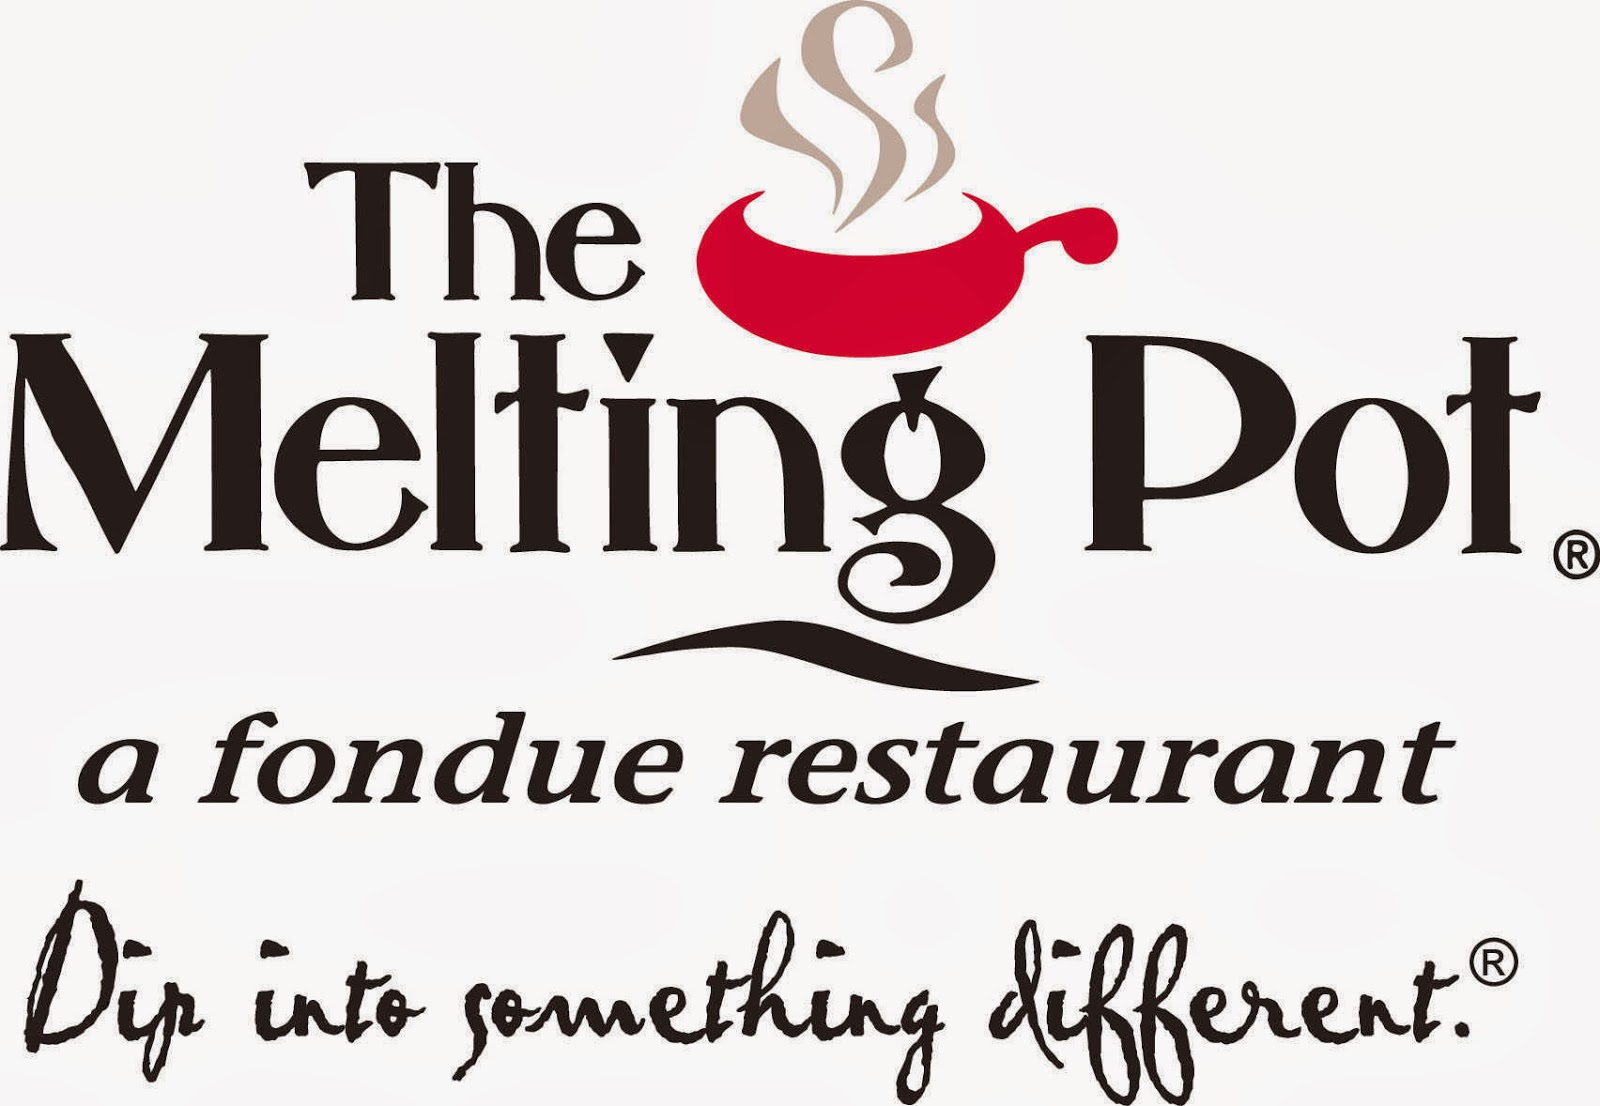 The Melting Pot - a fondue restaurant Gatlinburg